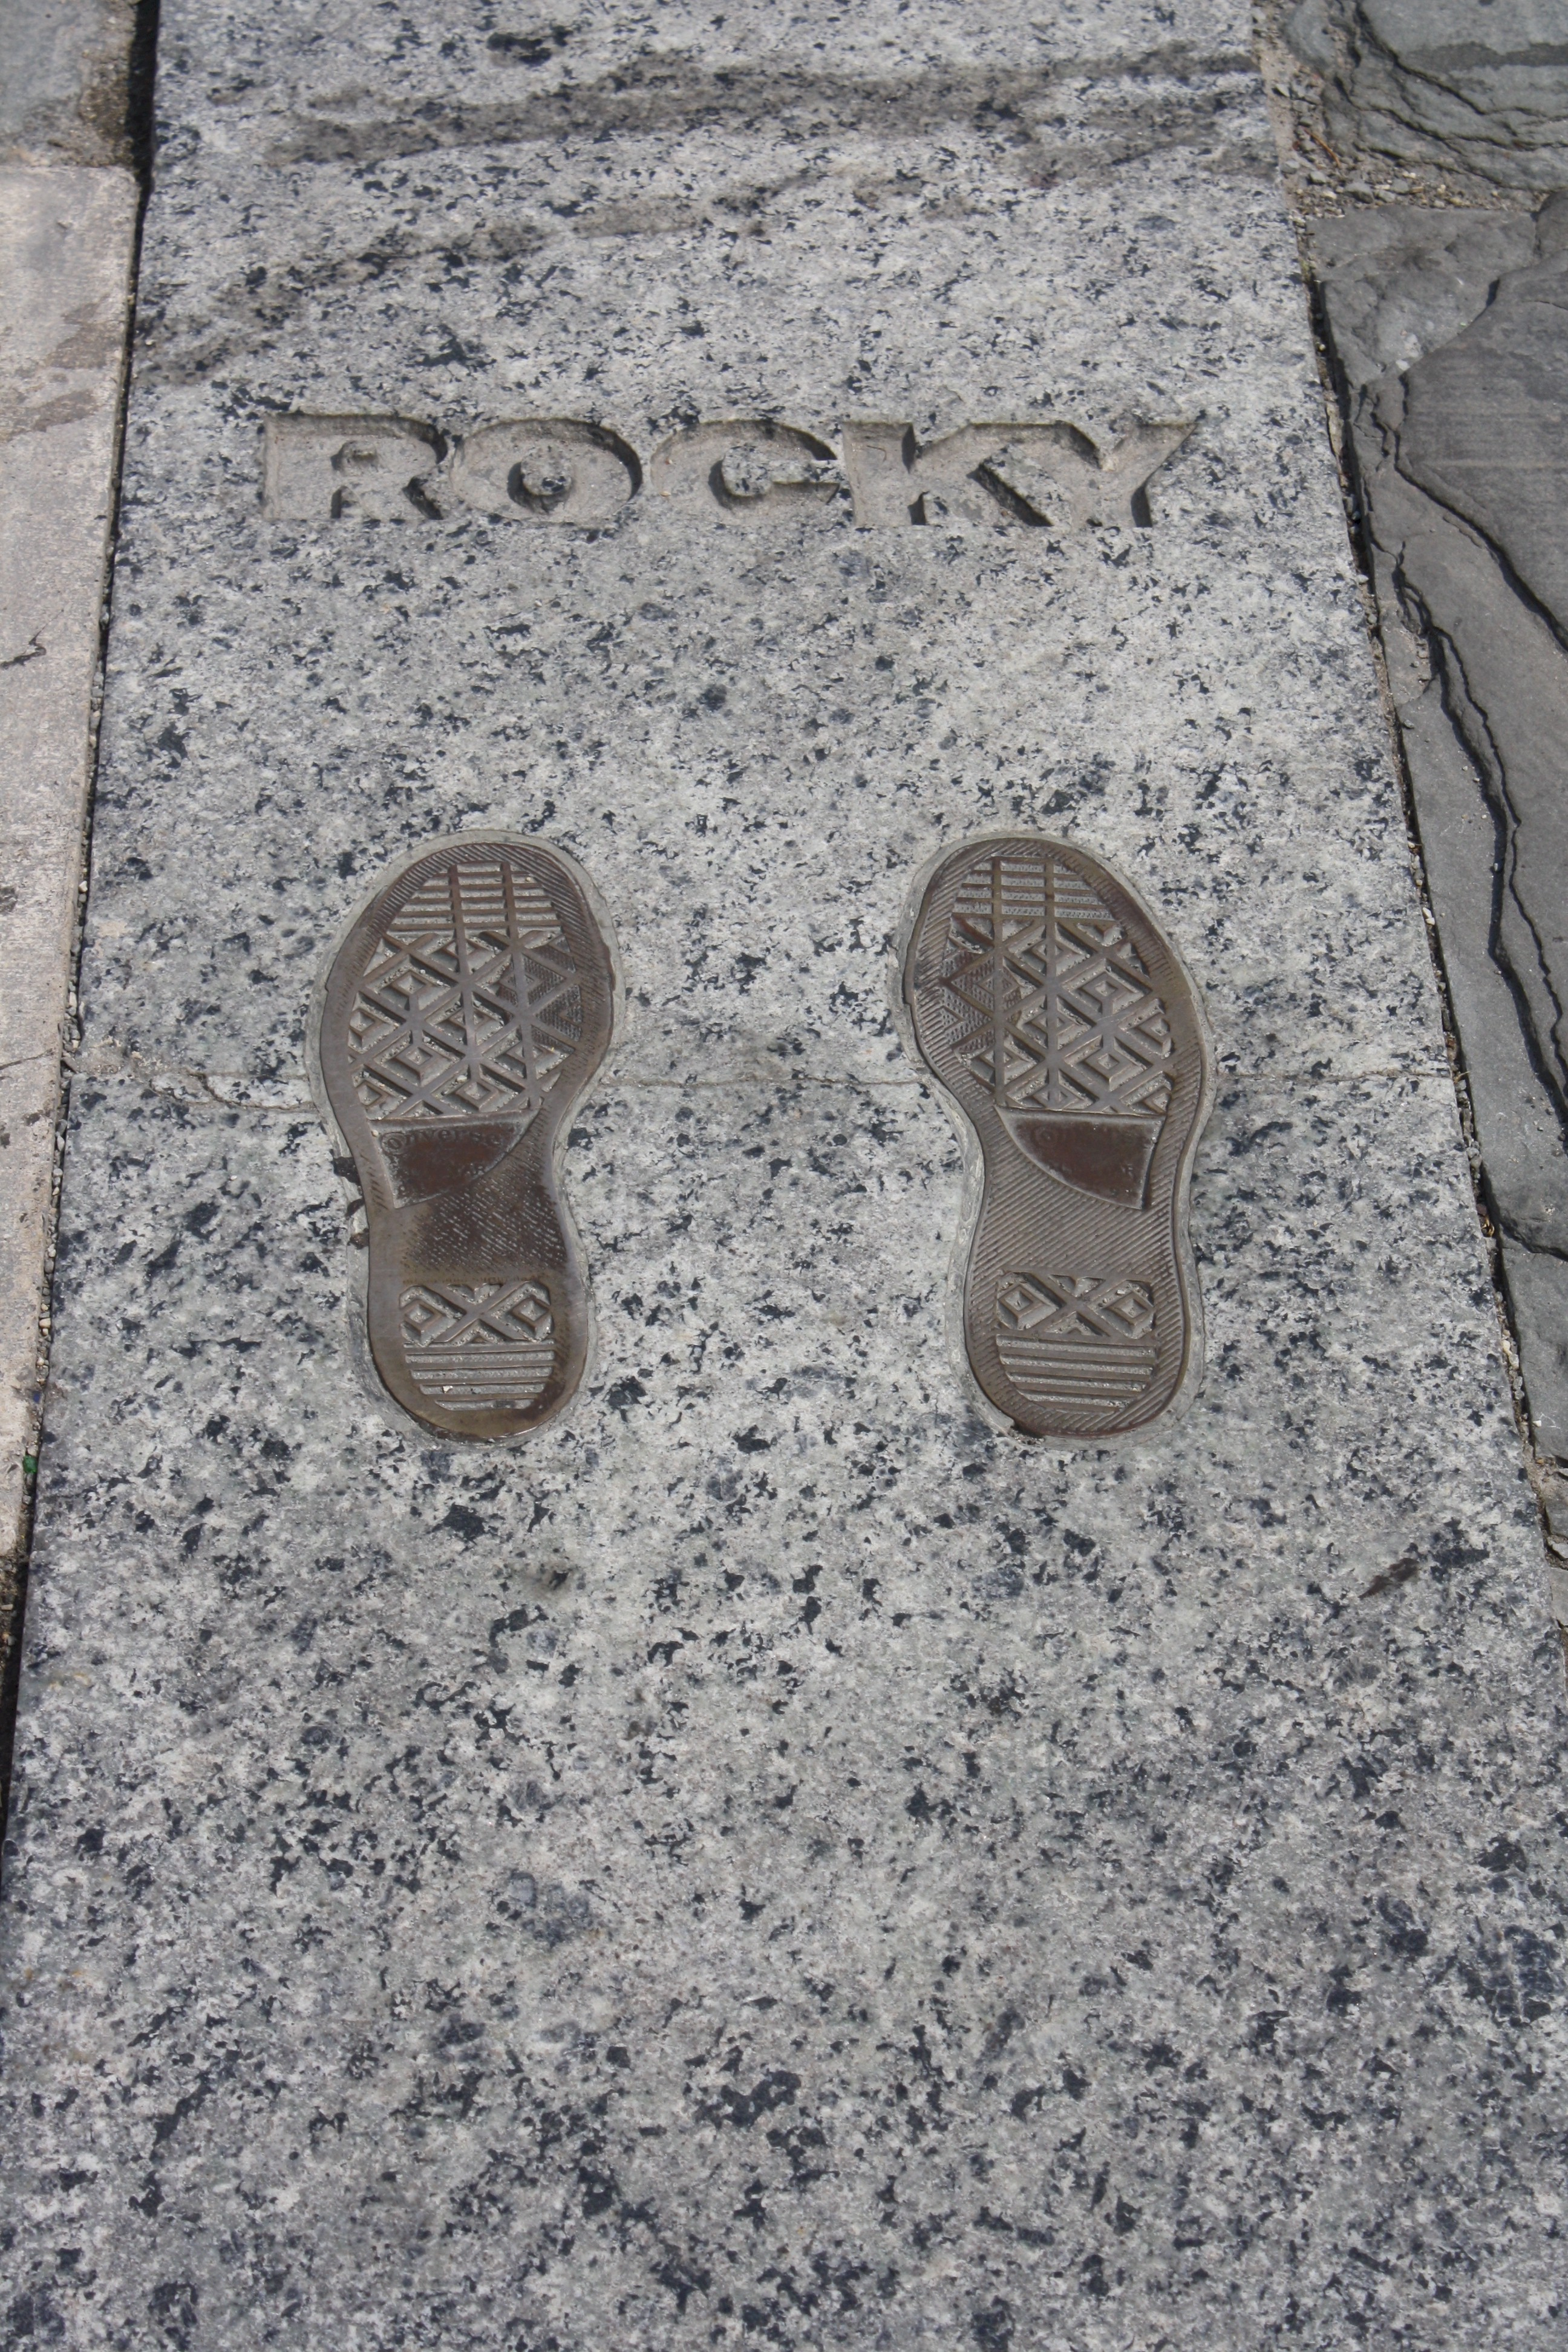 The Footprints of Rocky Balboa